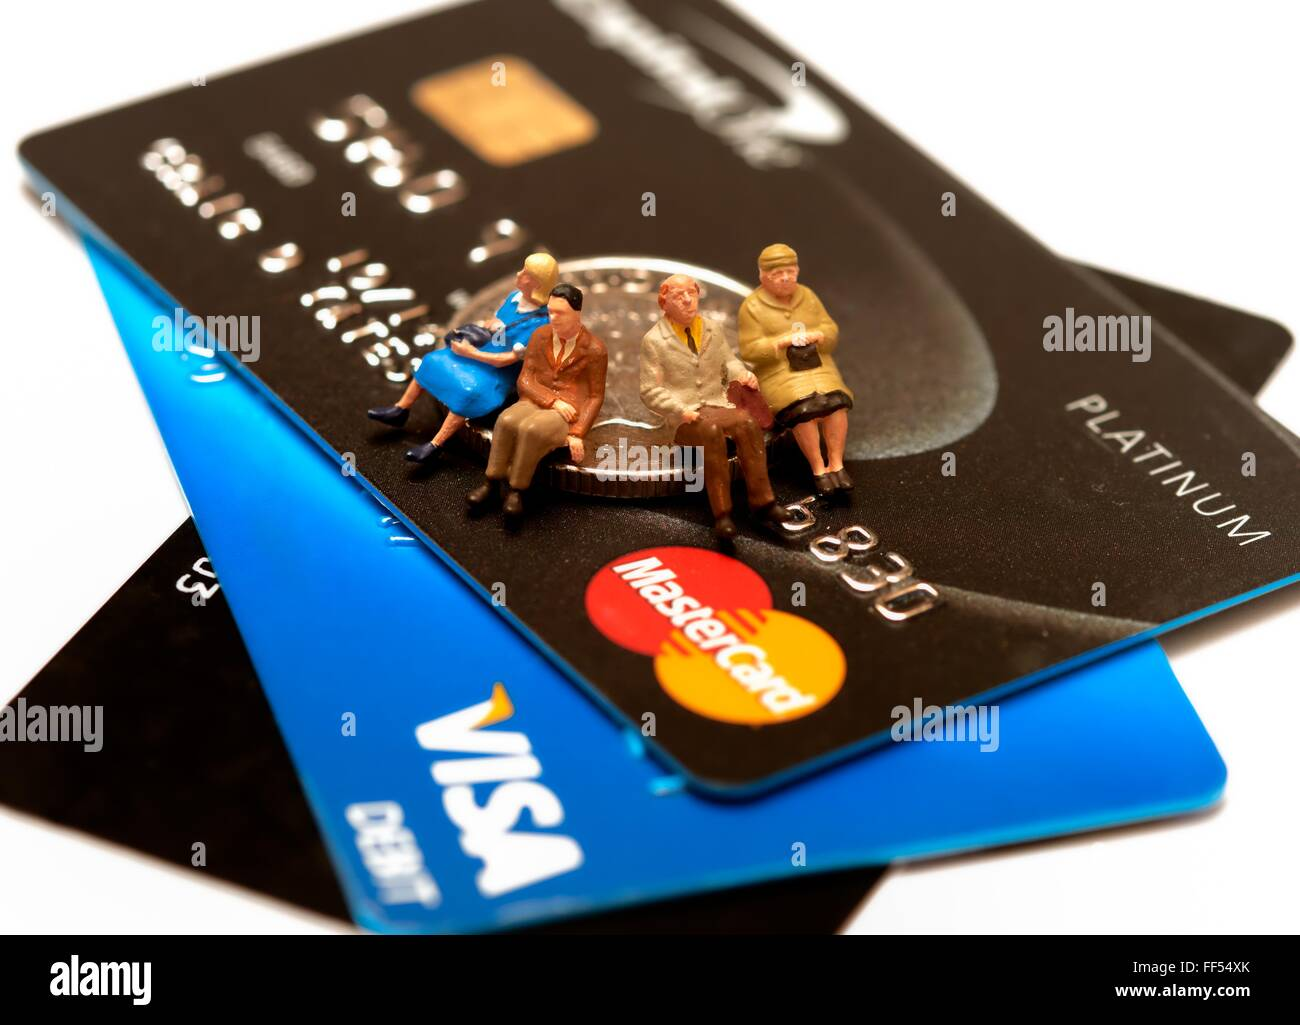 A Debit and credit card close up with a miniature figurines sitting on a coin. - Stock Image